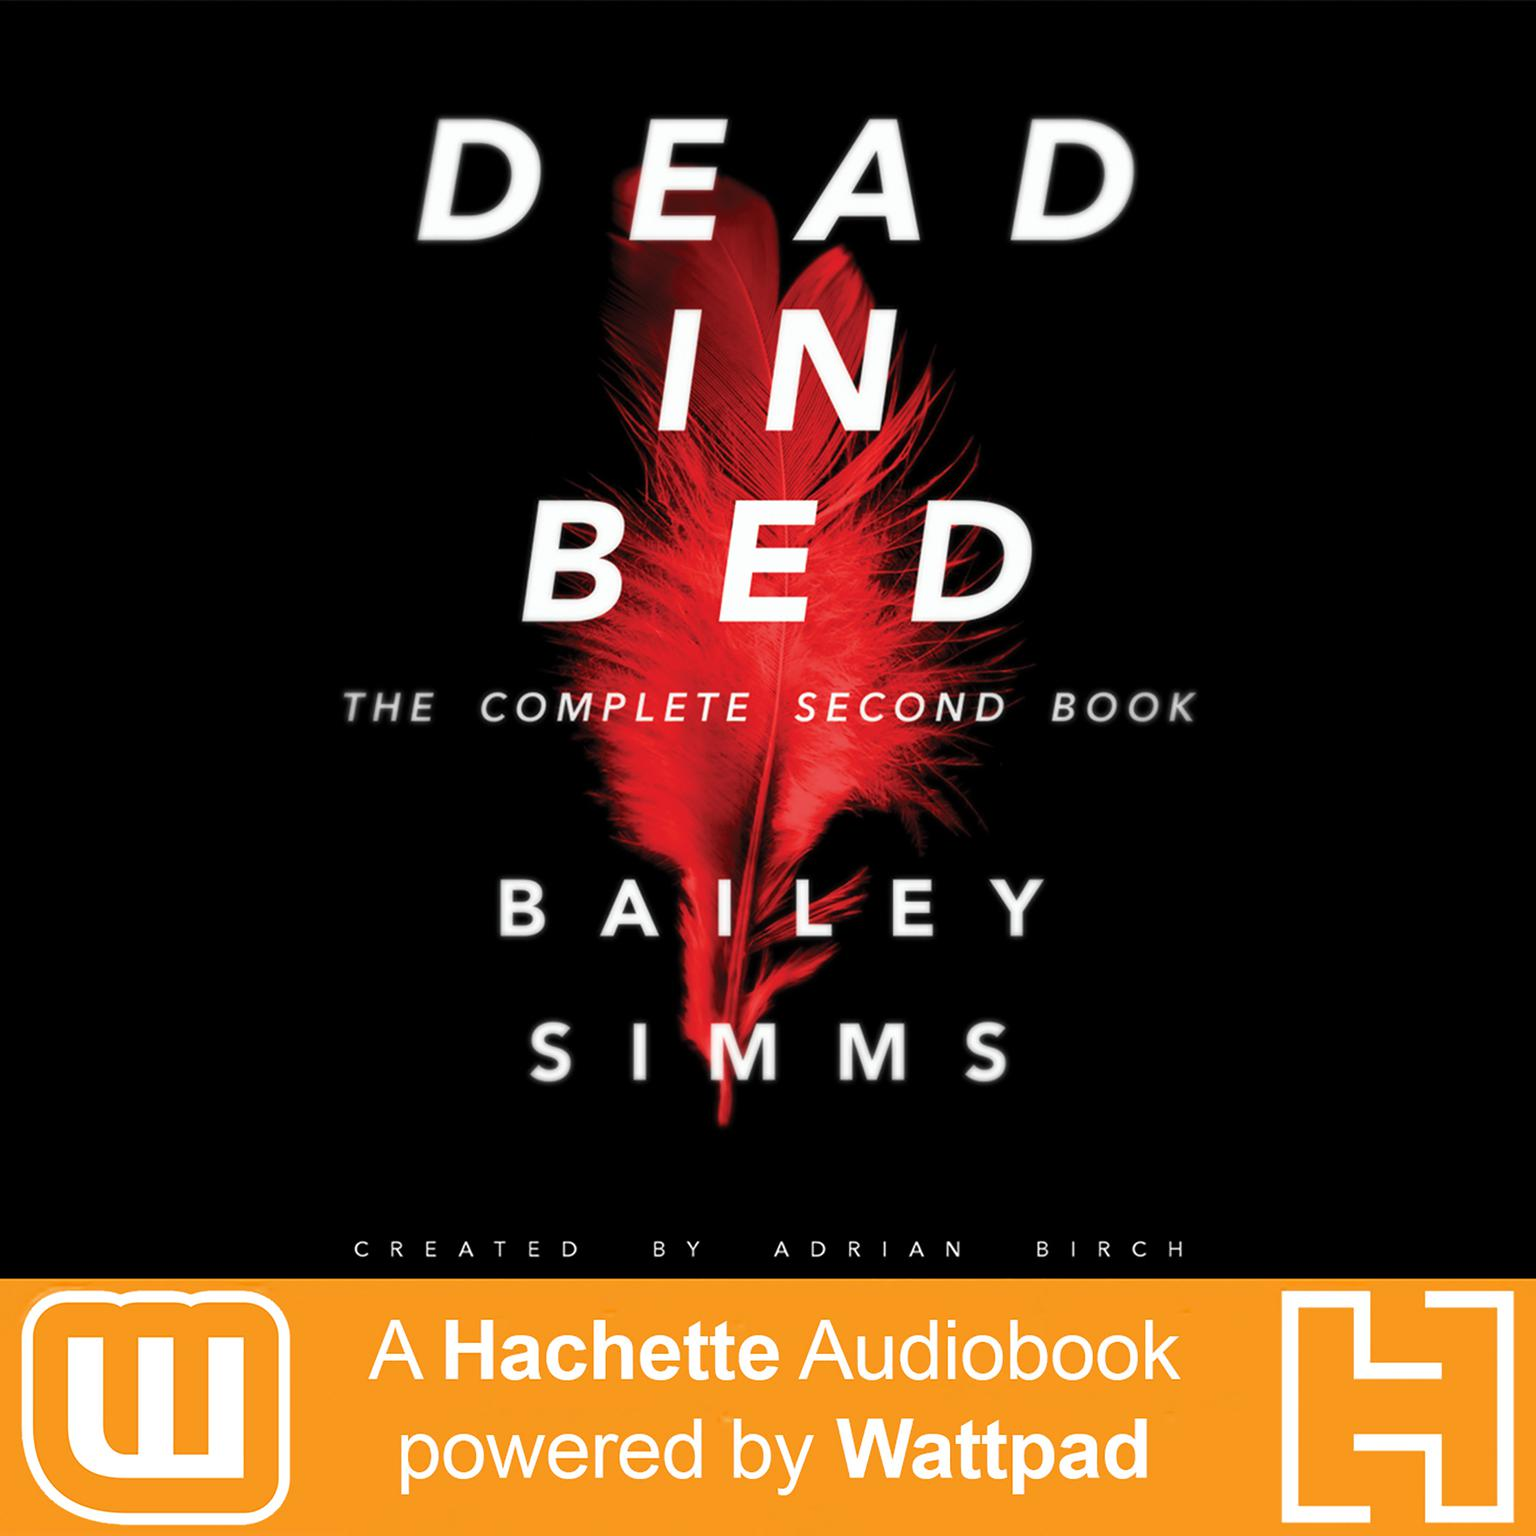 Dead in Bed by Bailey Simms: The Complete Second Book: A Hachette Audiobook powered by Wattpad Production Audiobook, by Adrian Birch